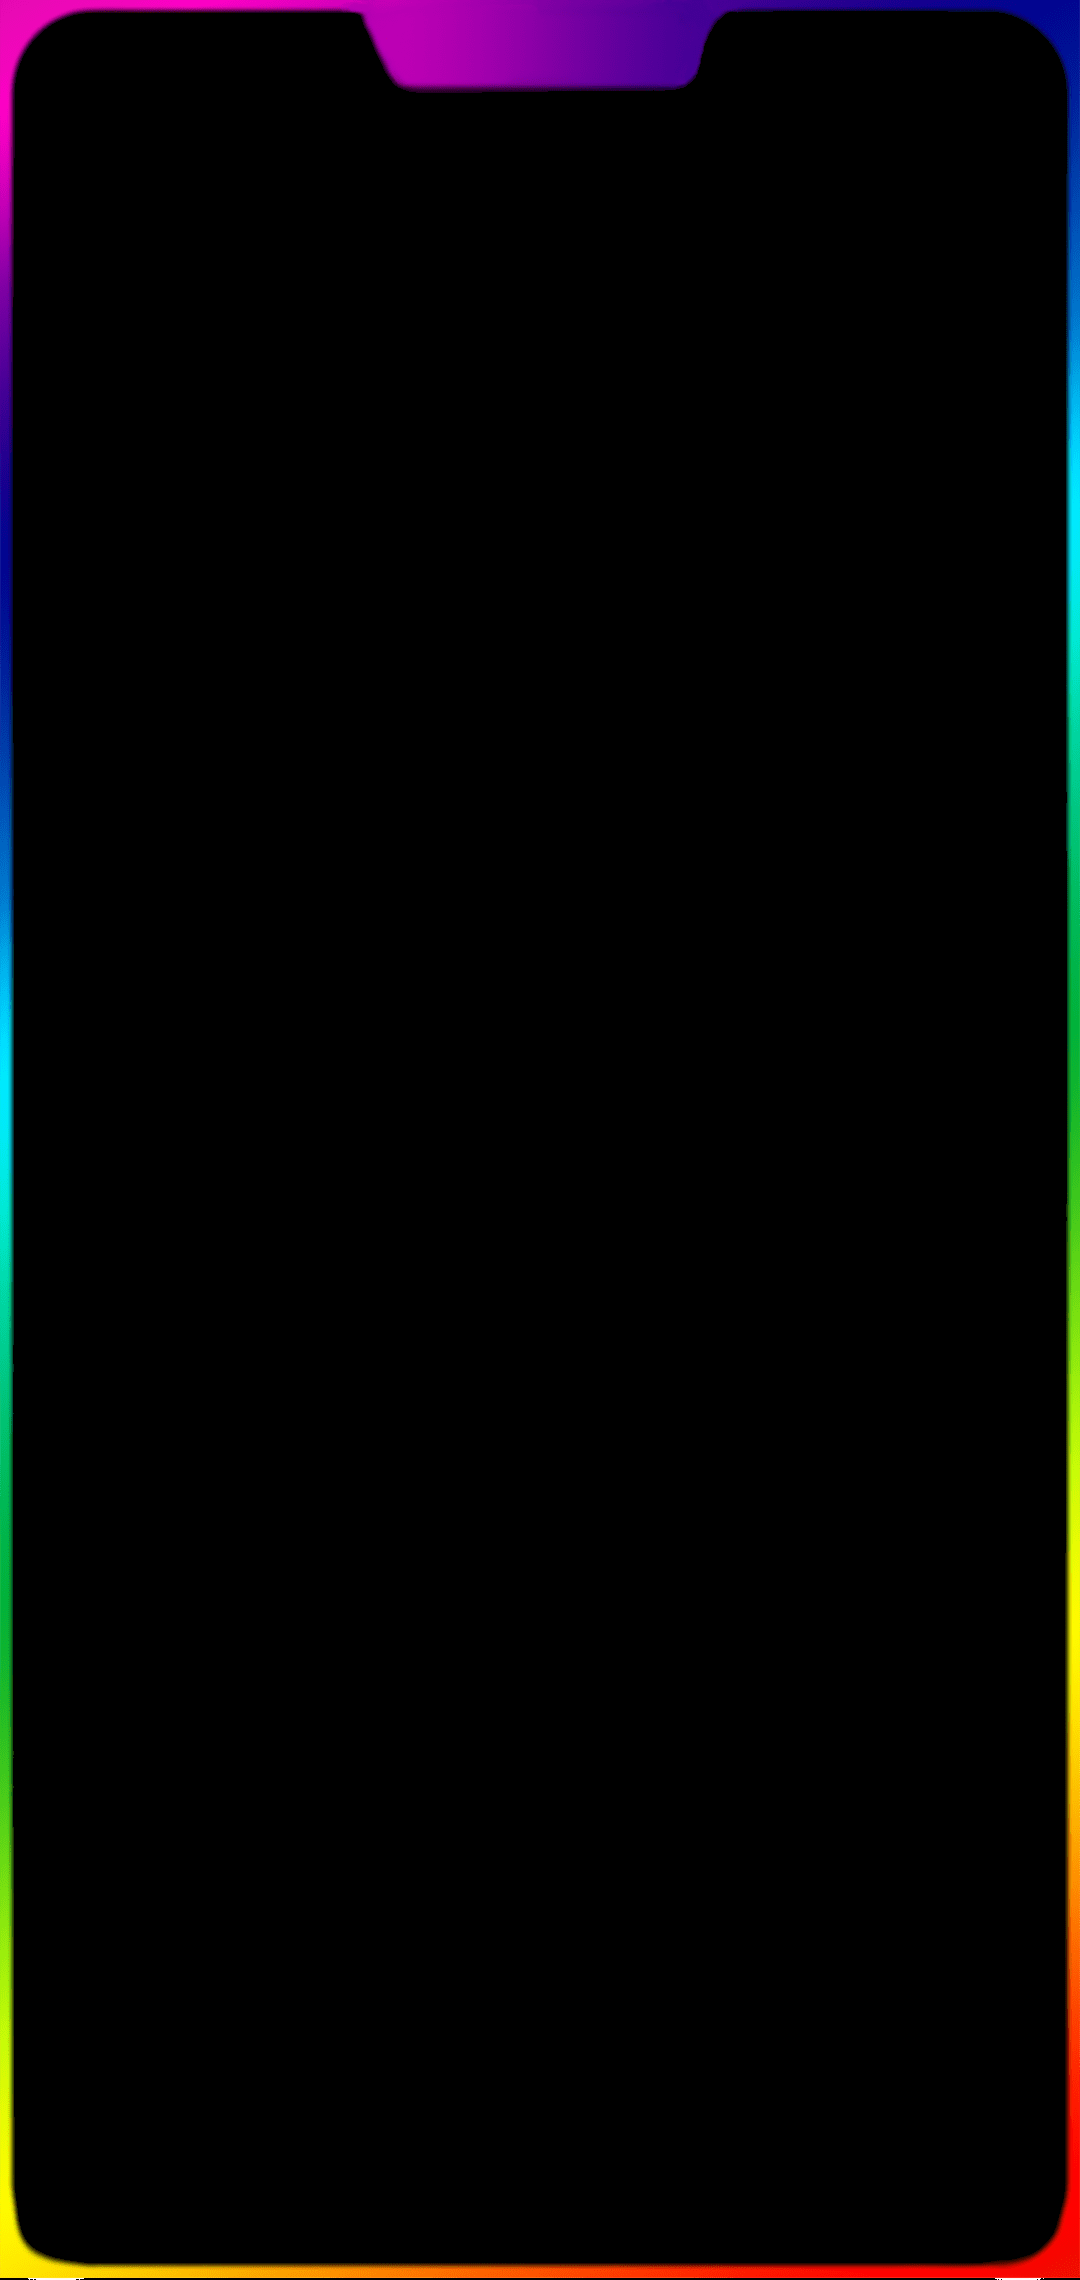 Rainbow Border Wallpaper : rainbow, border, wallpaper, Oneplus, Rainbow, Border, [1080x2280], (#1925545), Wallpaper, Backgrounds, Download